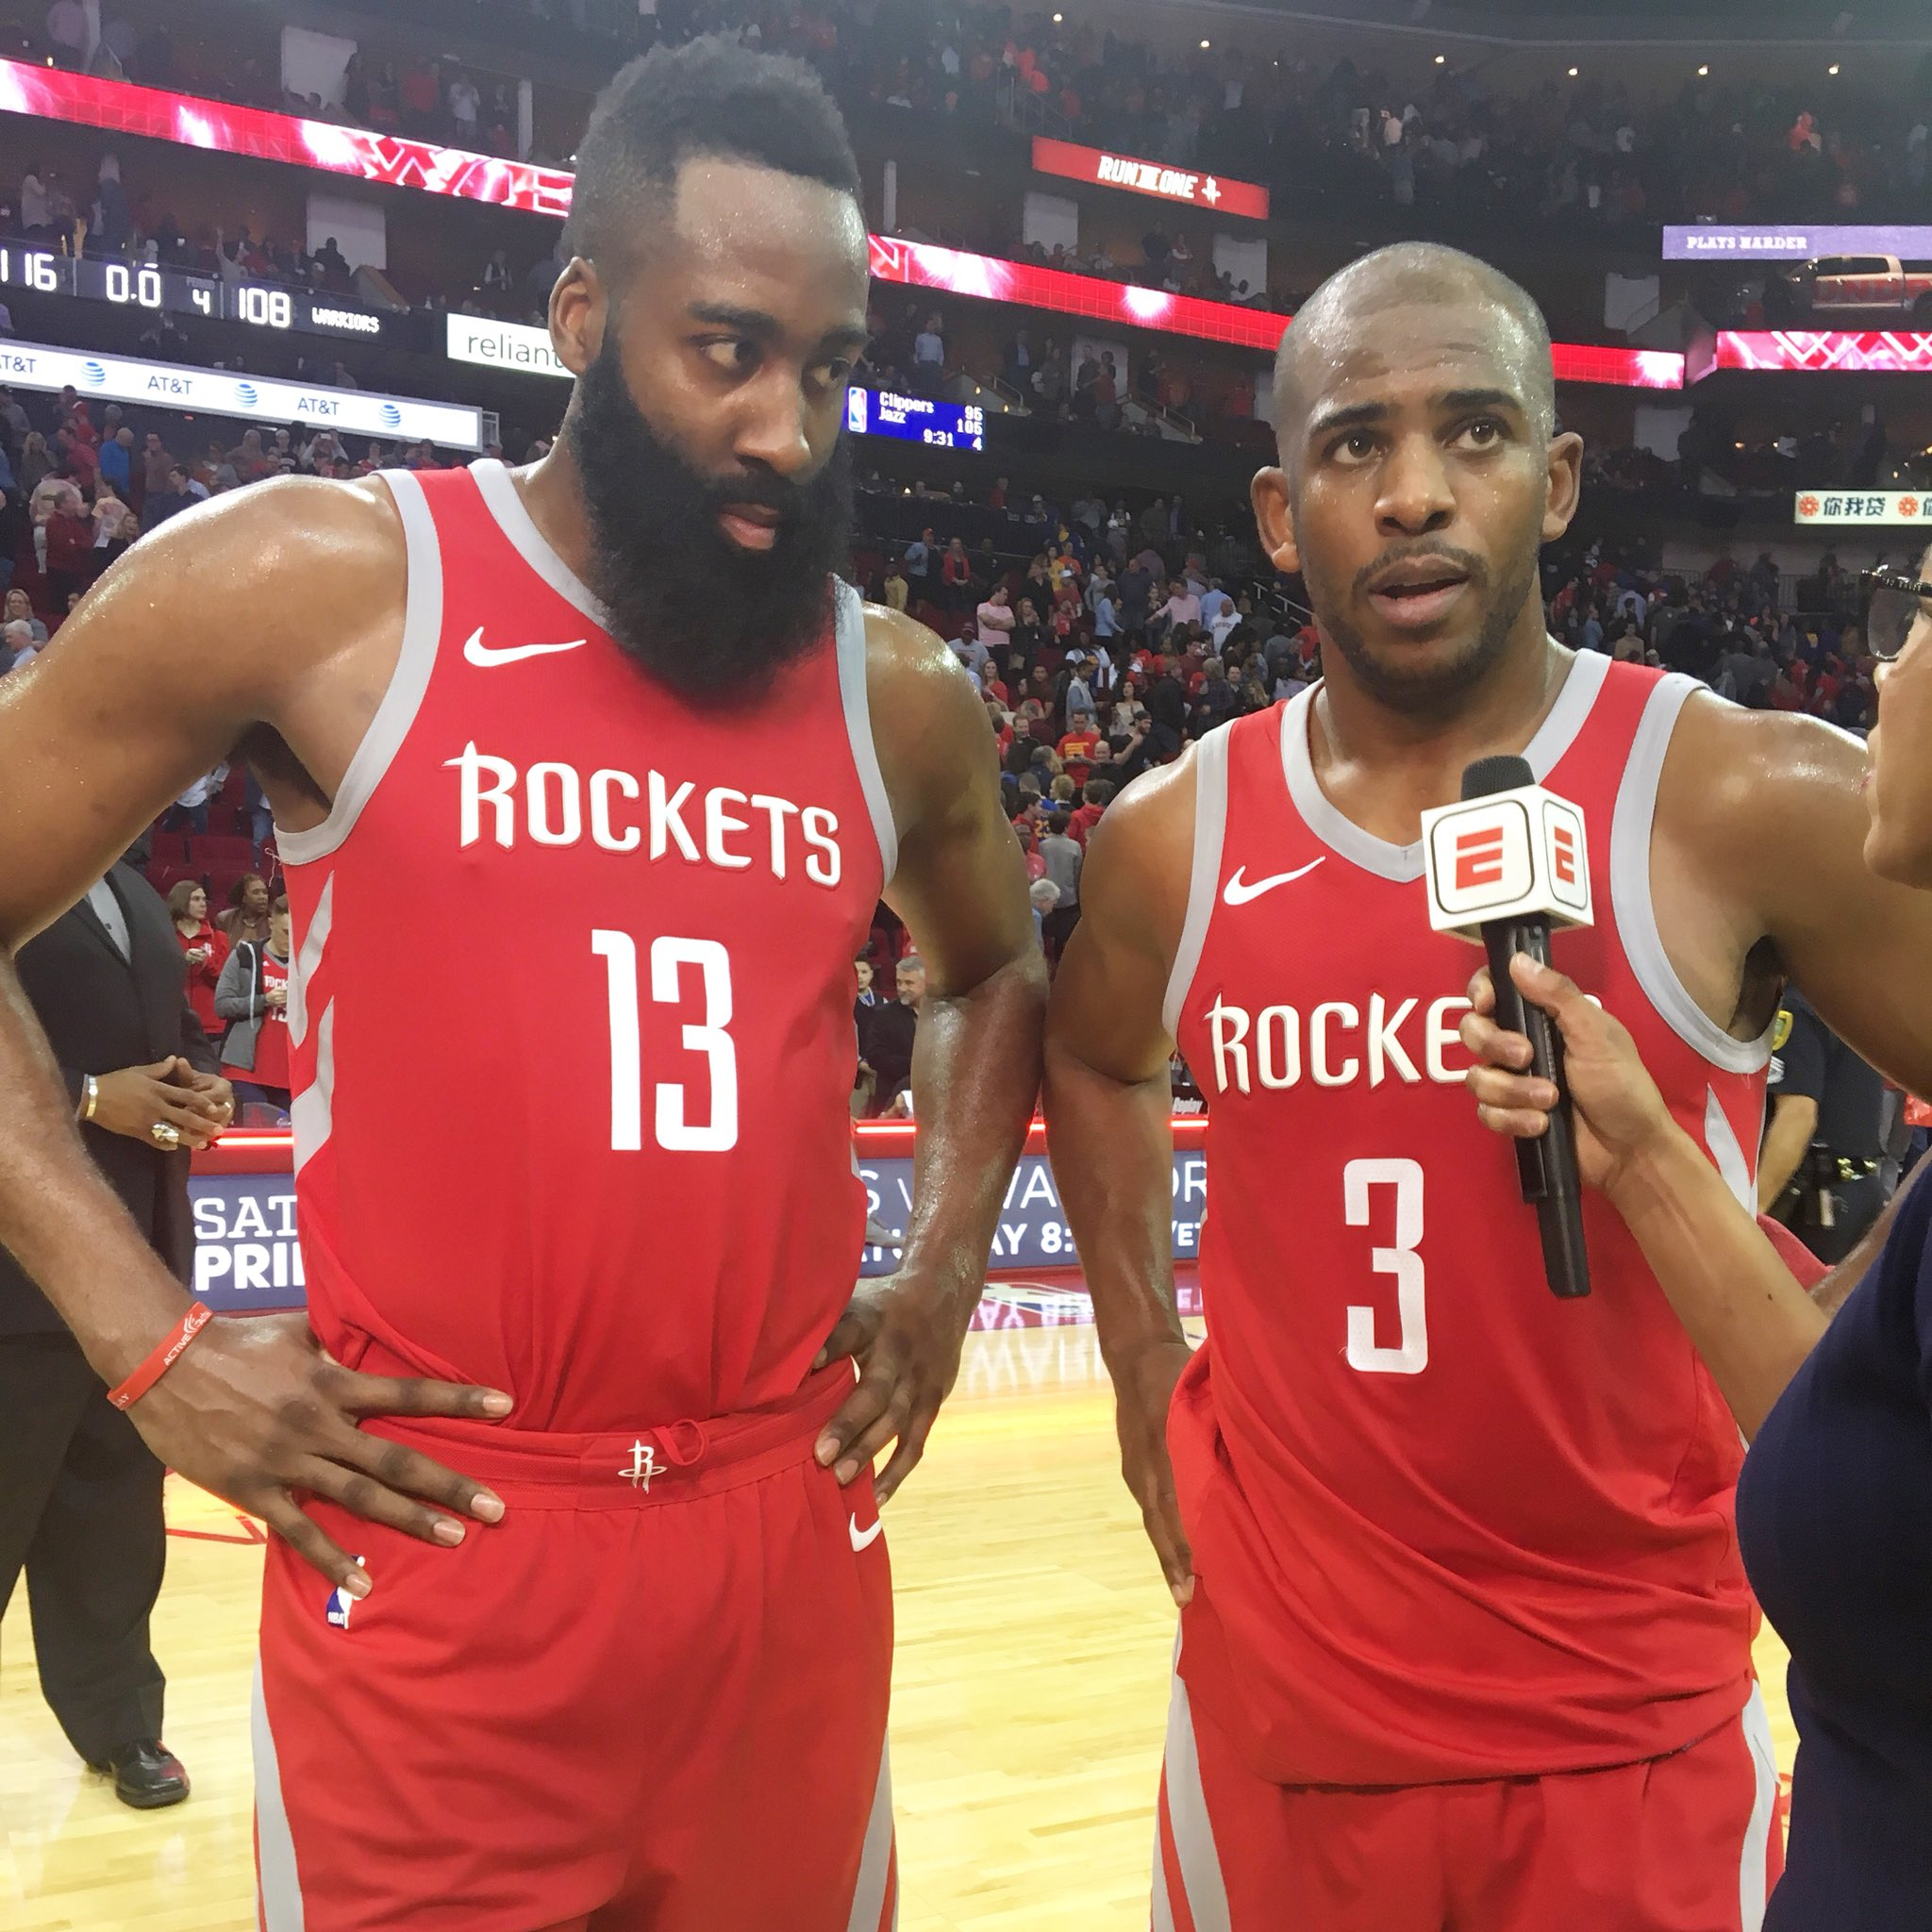 HOU's backcourt vs. GSW:  Harden - 22 PTS, 8 ASTS CP3 - 33 PTS, 11 REBS, 7 ASTS  #Rockets https://t.co/Q7LNUO7RWd